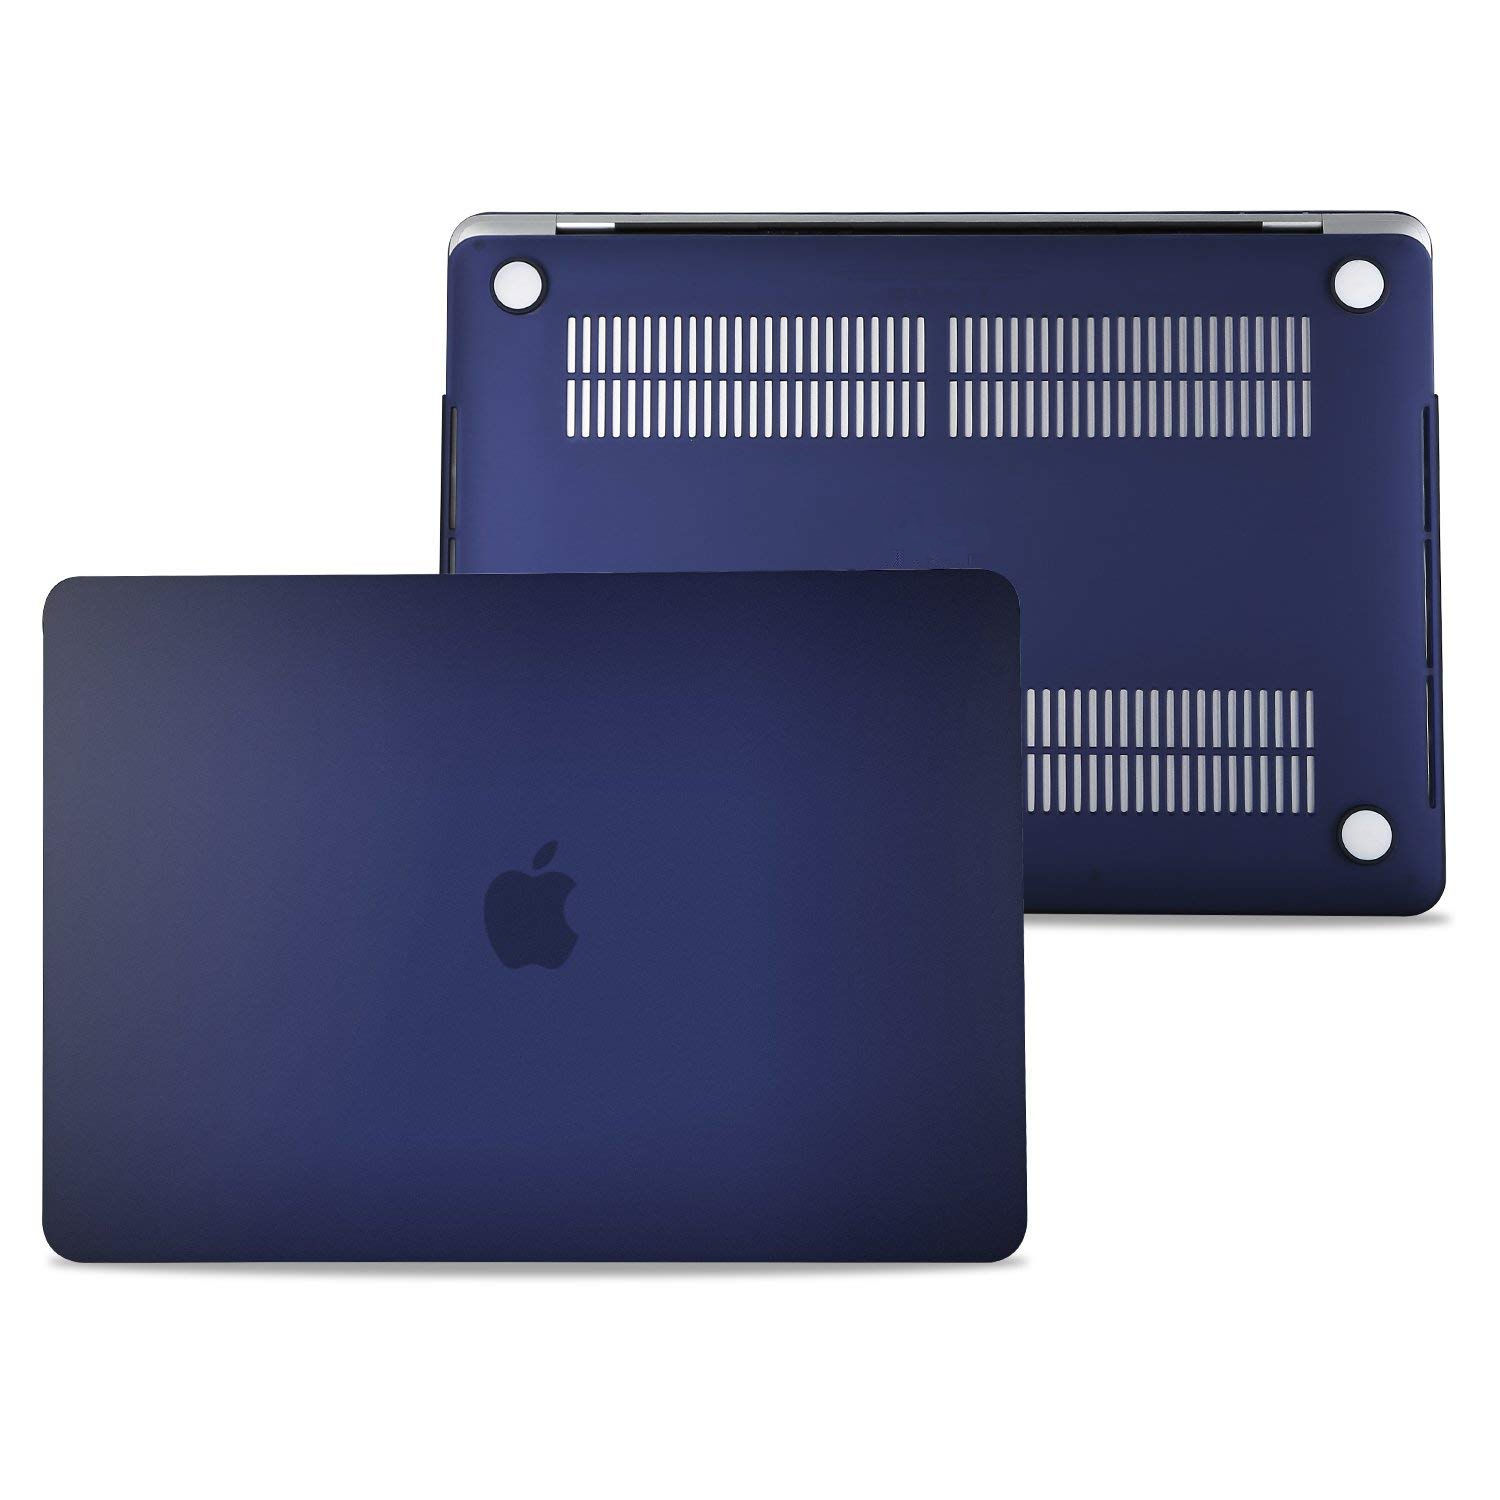 Funda de goma dura para Macbook Air Pro 2020, para Macbook Pro 13 pulgadas modelo A2289 A2251